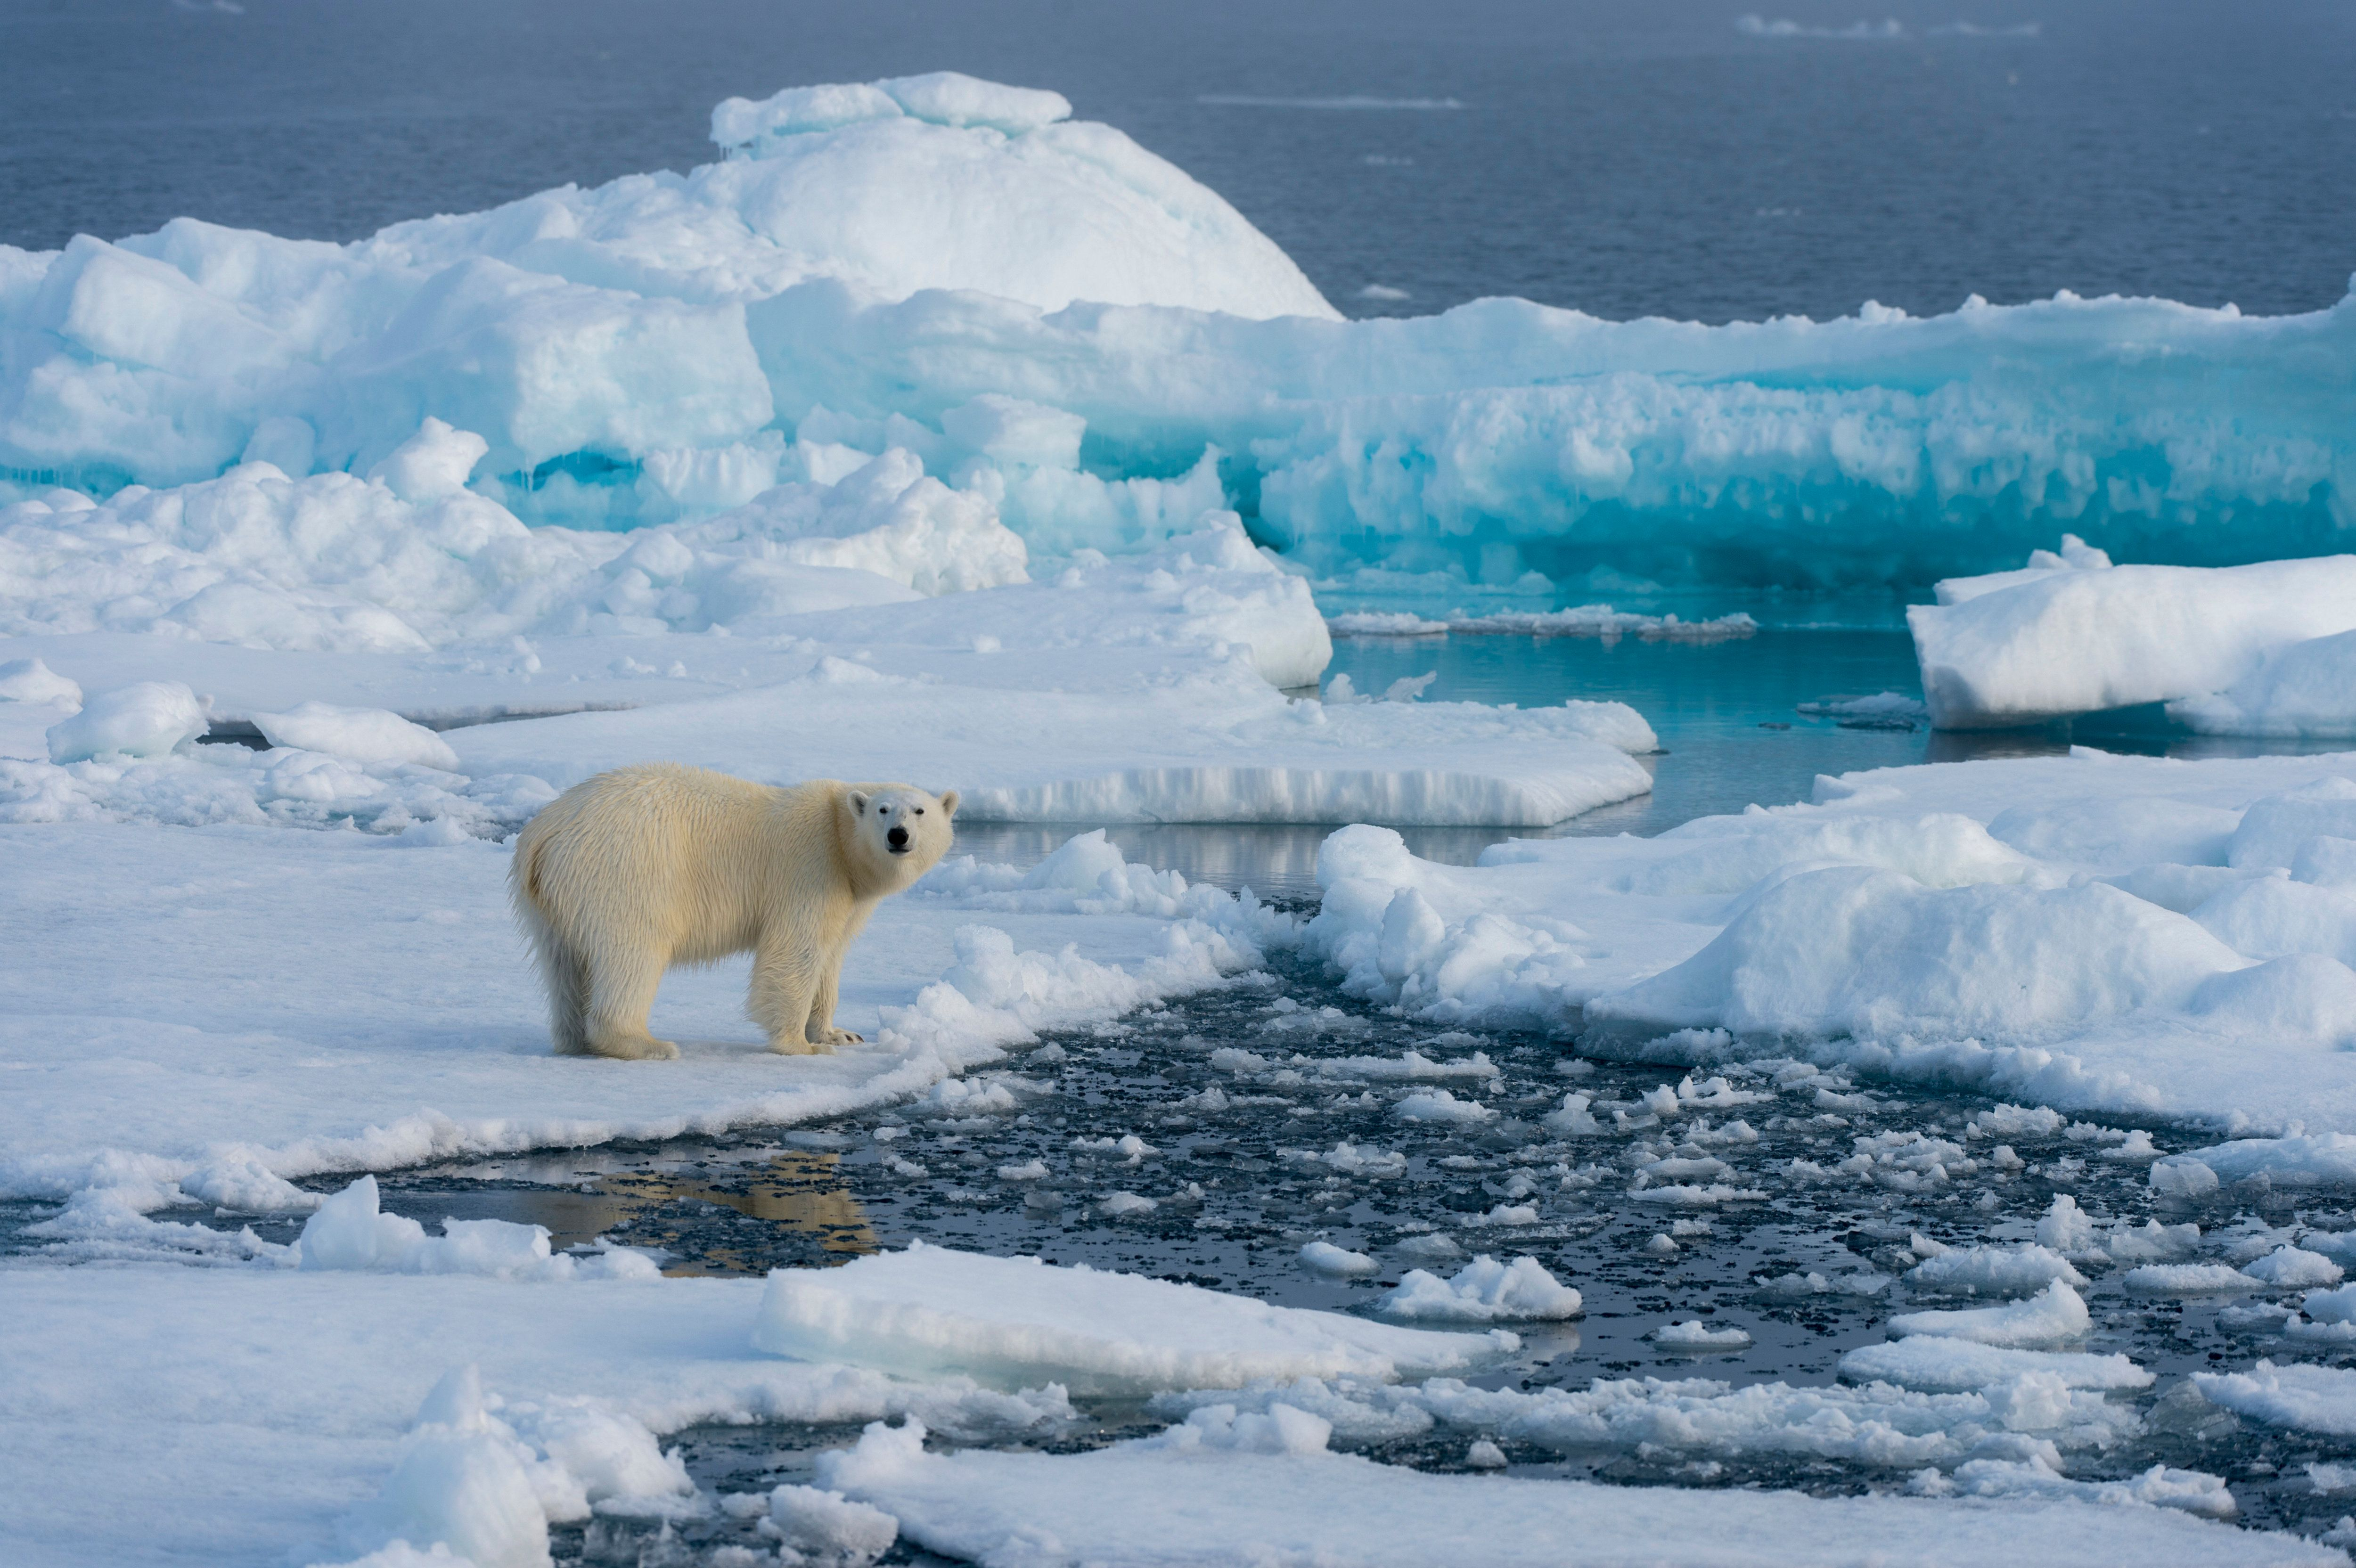 A polar bear on the pack ice north of Svalbard,